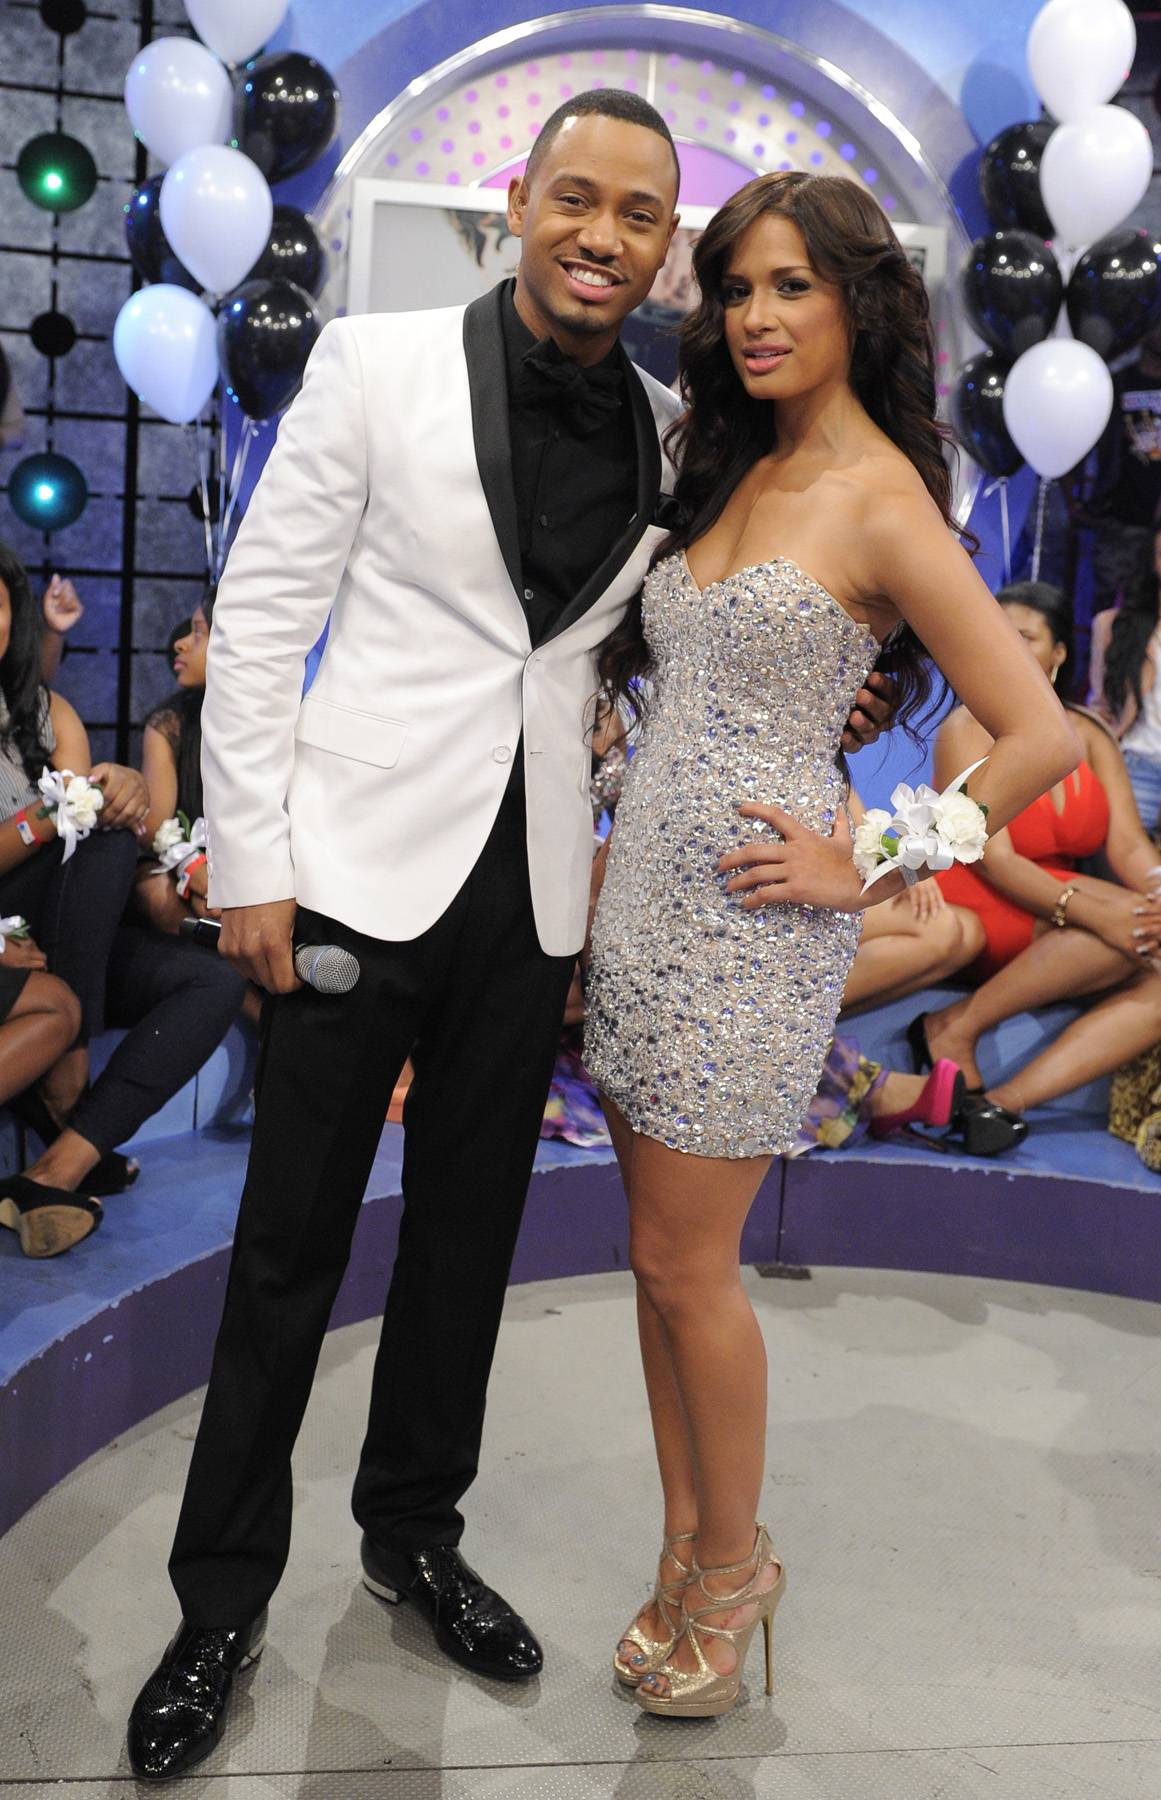 Prom Night Feature - Terrence J and Rocsi Diaz brings the prom on todays show at 106 & Park, May 25, 2012. (Photo: John Ricard / BET)